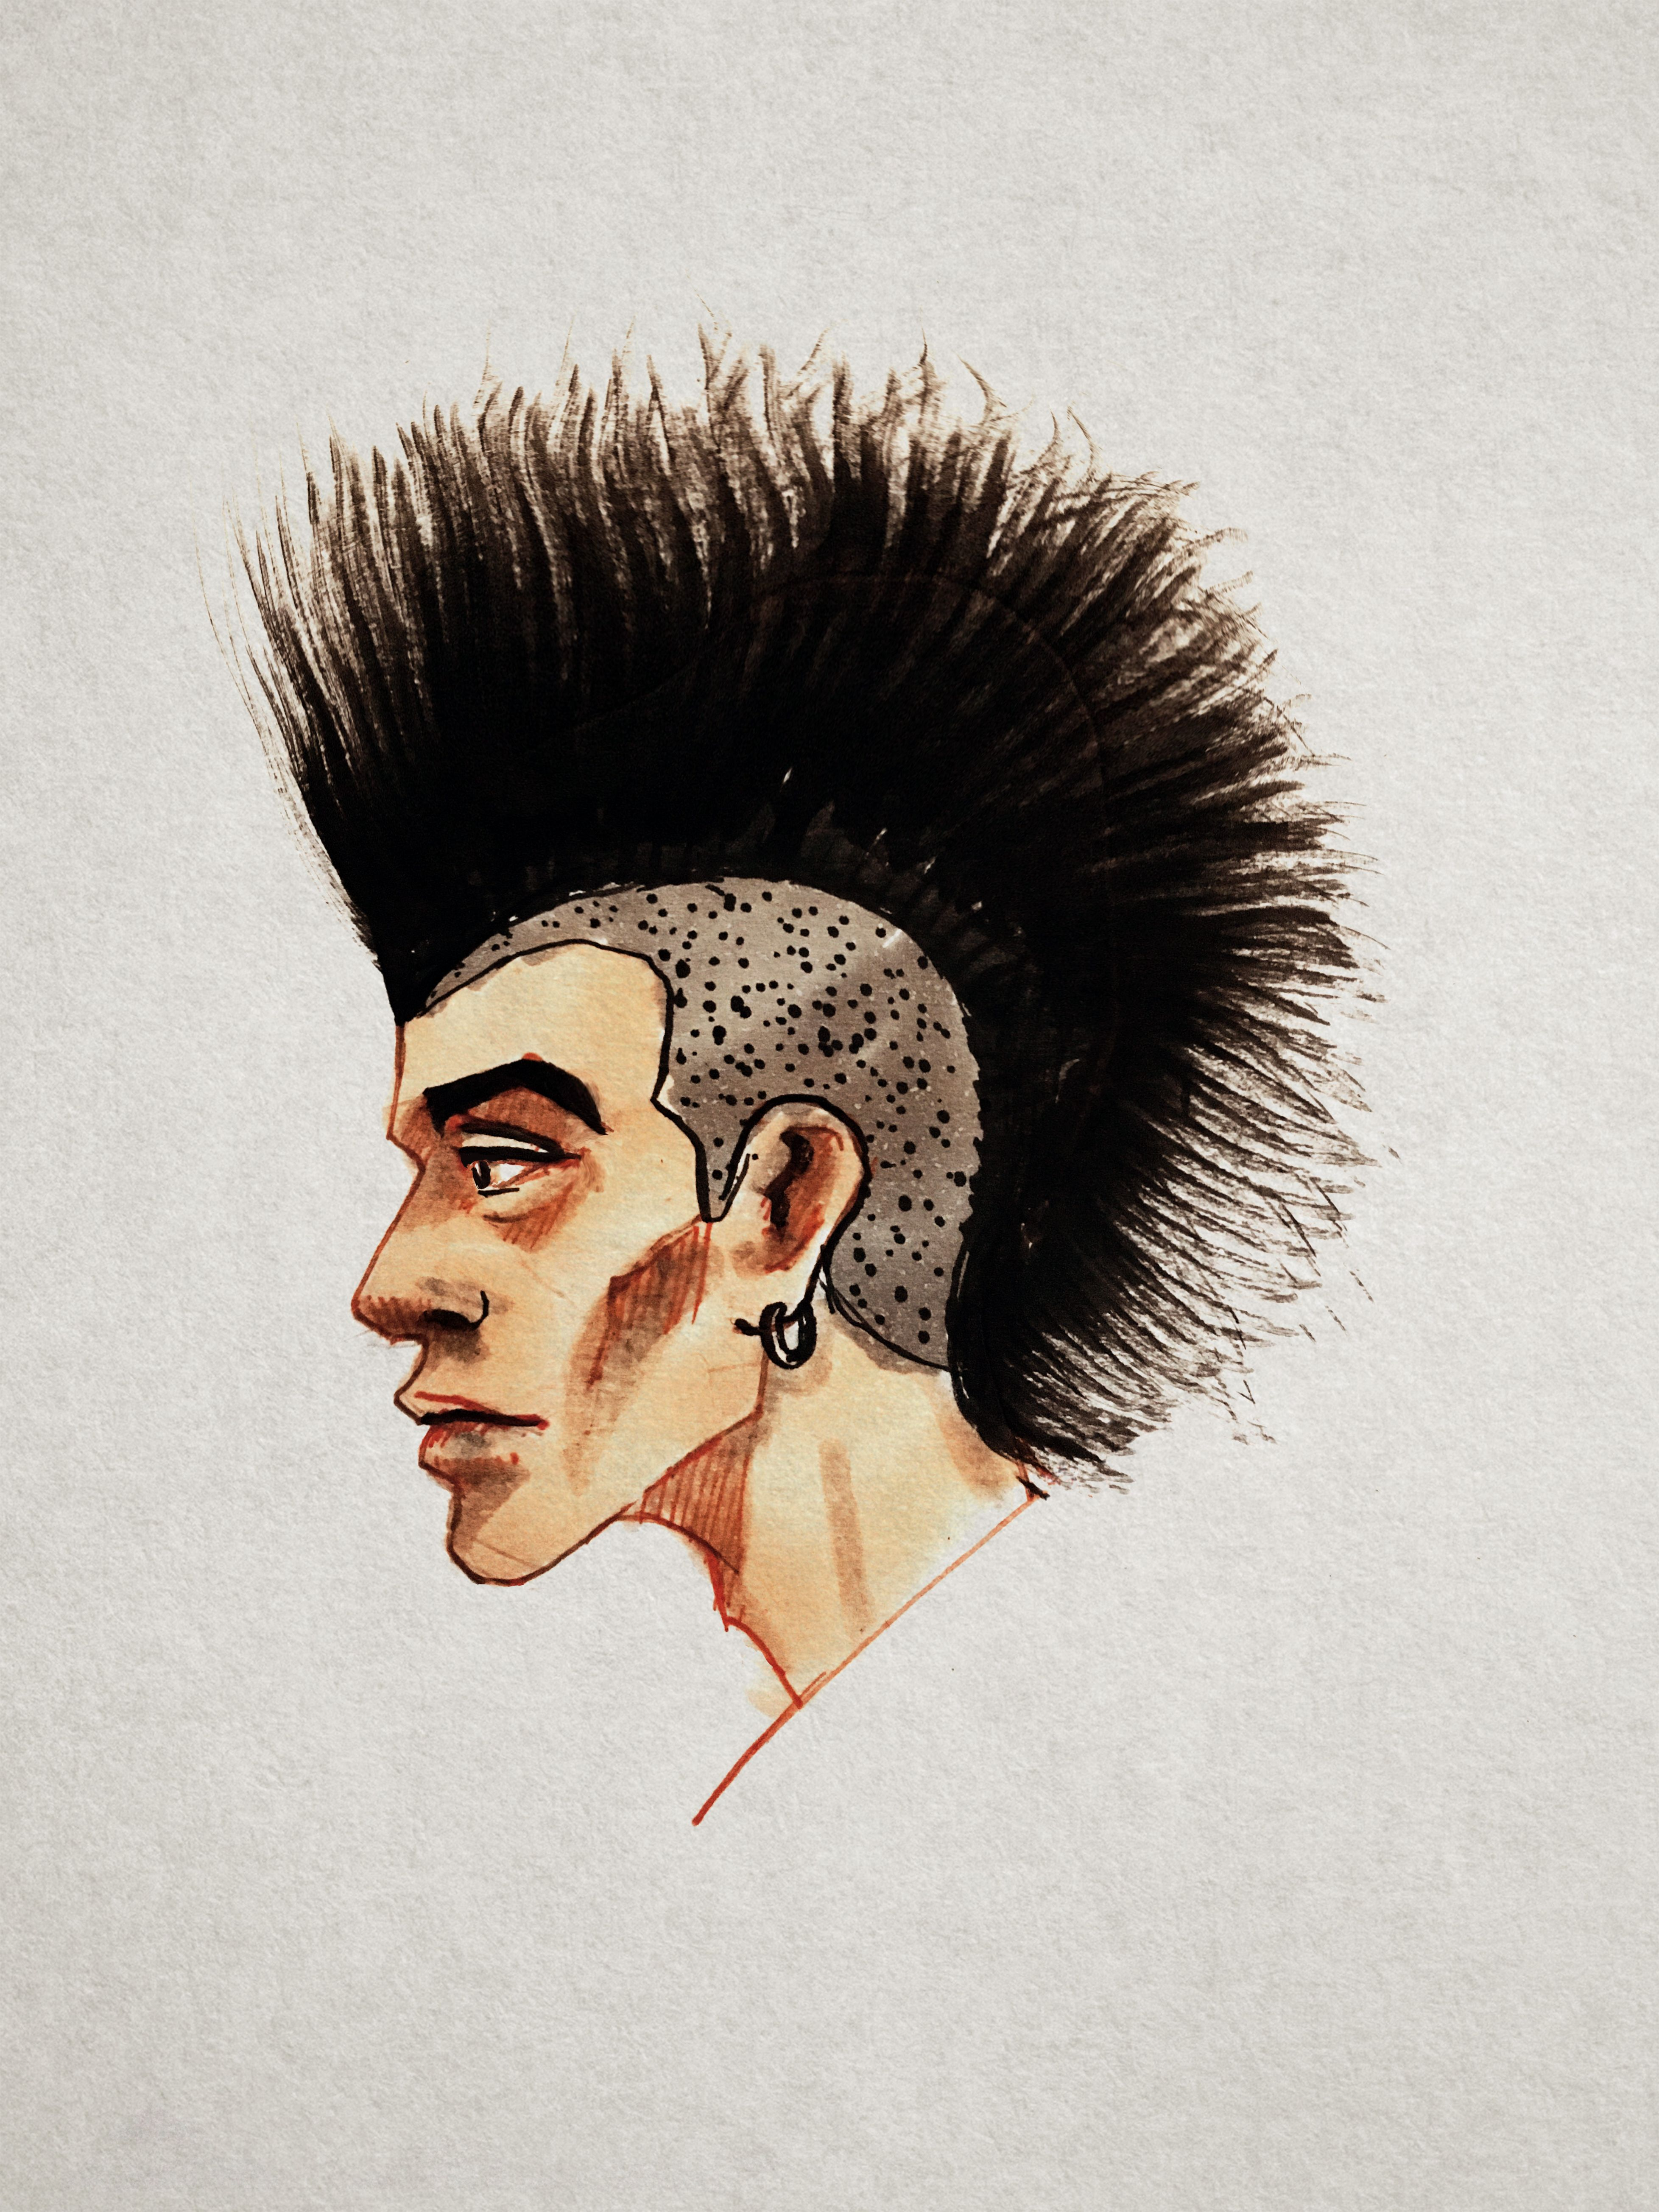 Punk male head hair style drawing